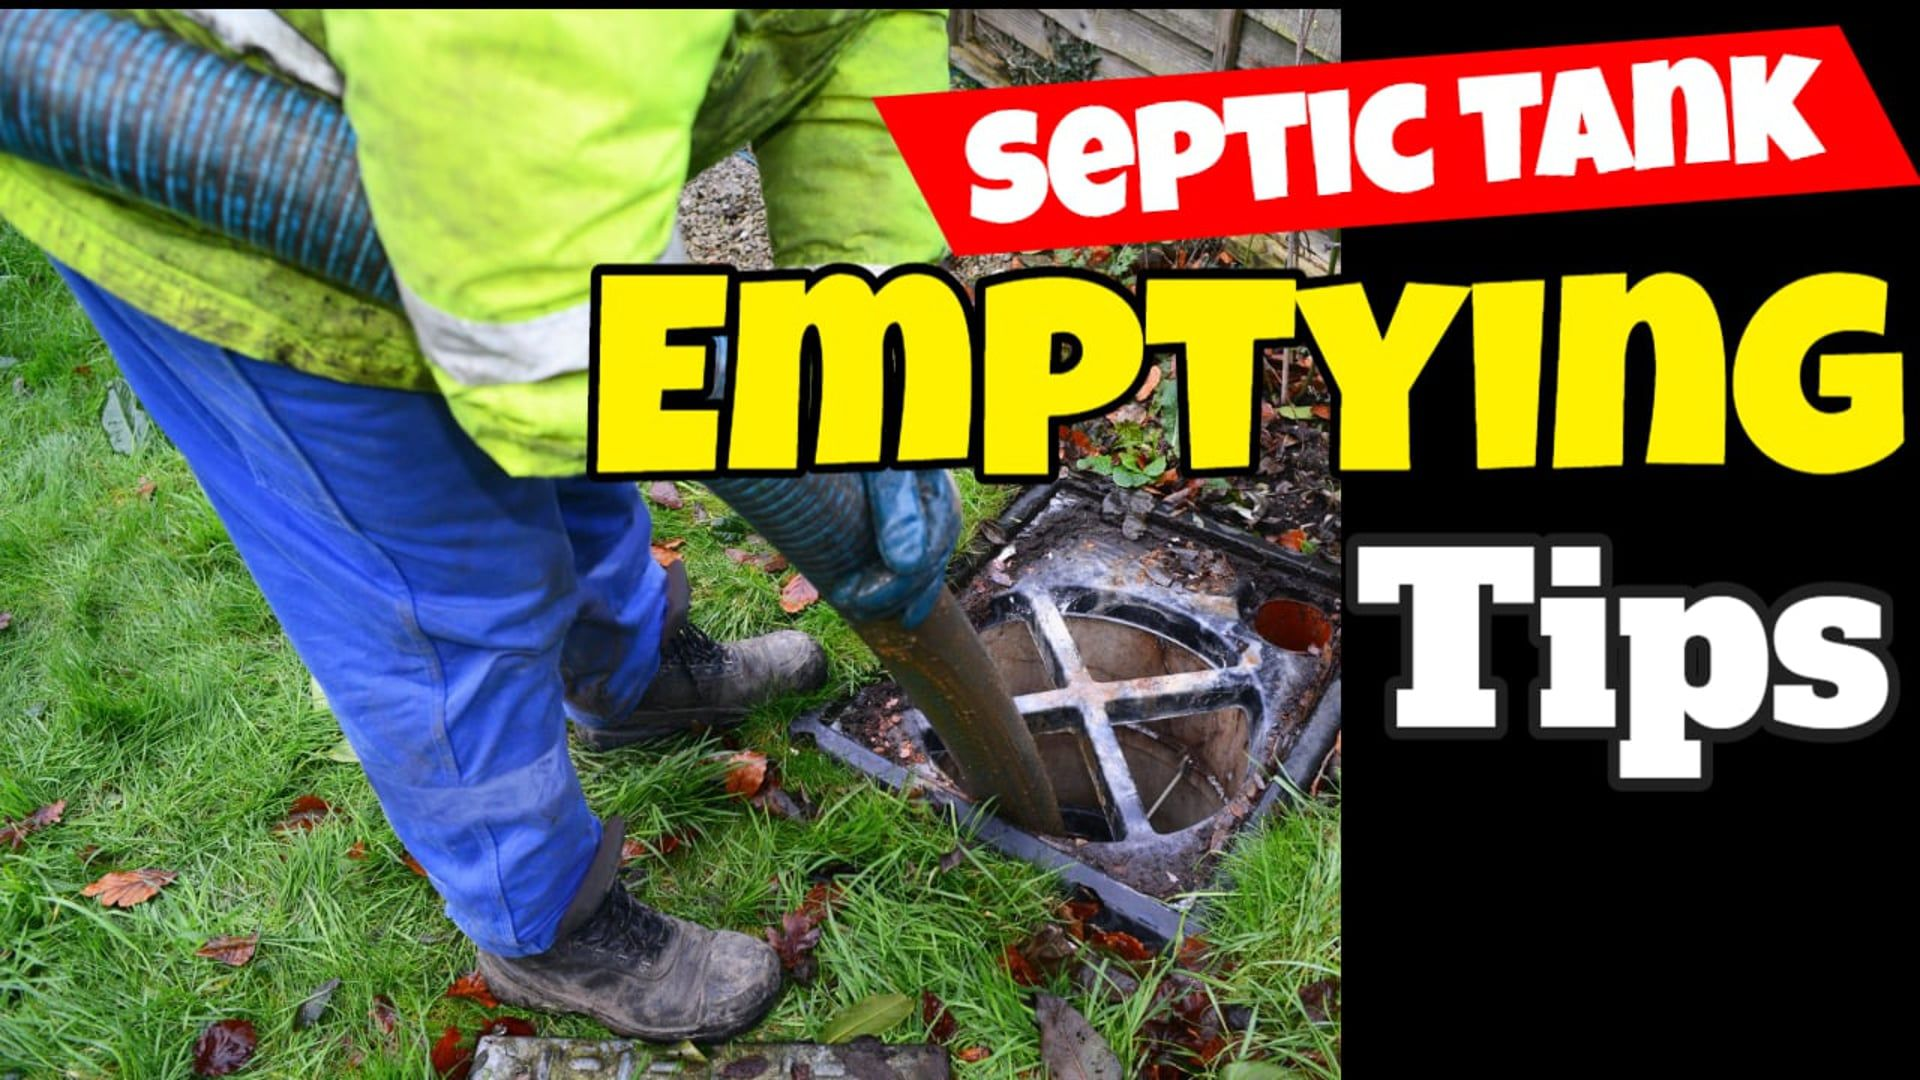 septic tank emptying cost Septic Tanks UK Septic Tanks